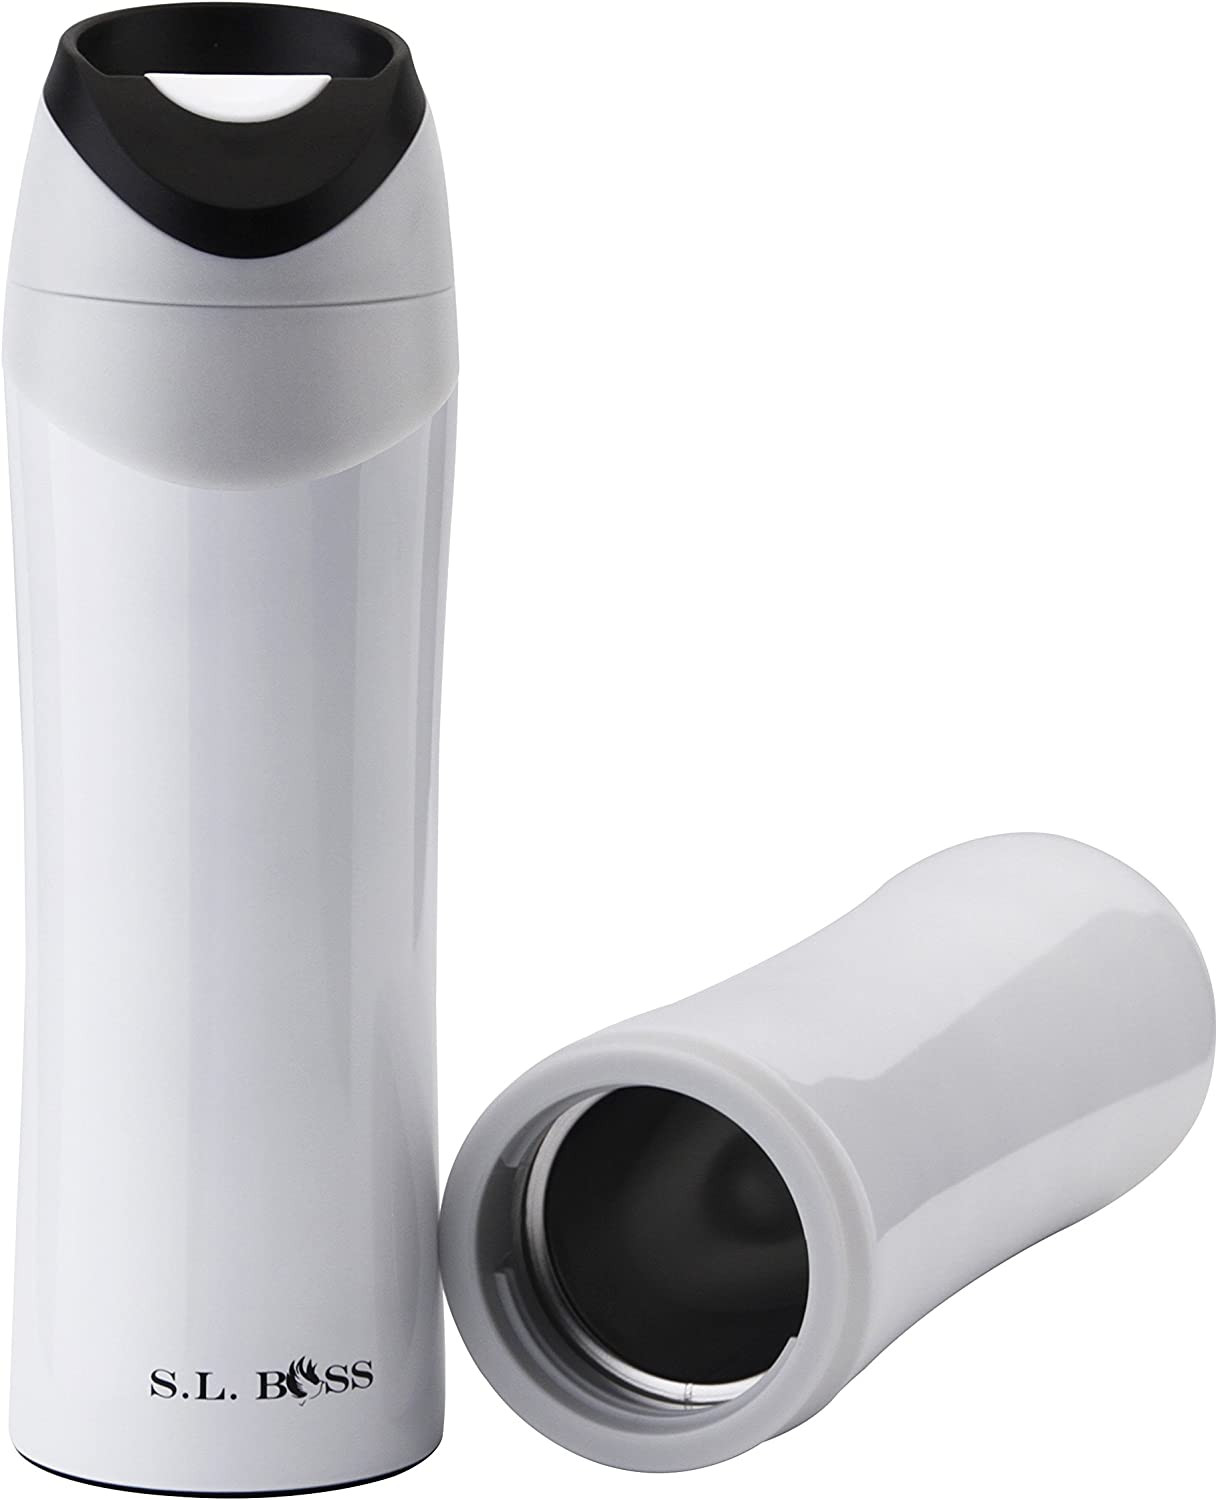 Stainless Steel Double Wall Vacuum Insulated Coffee Travel Mug Tumbler Water Coffee Cup Keeps Beverages Hot And Cold For Home School Office Leak Proof 16oz 500ml Amazon Ca Home Kitchen